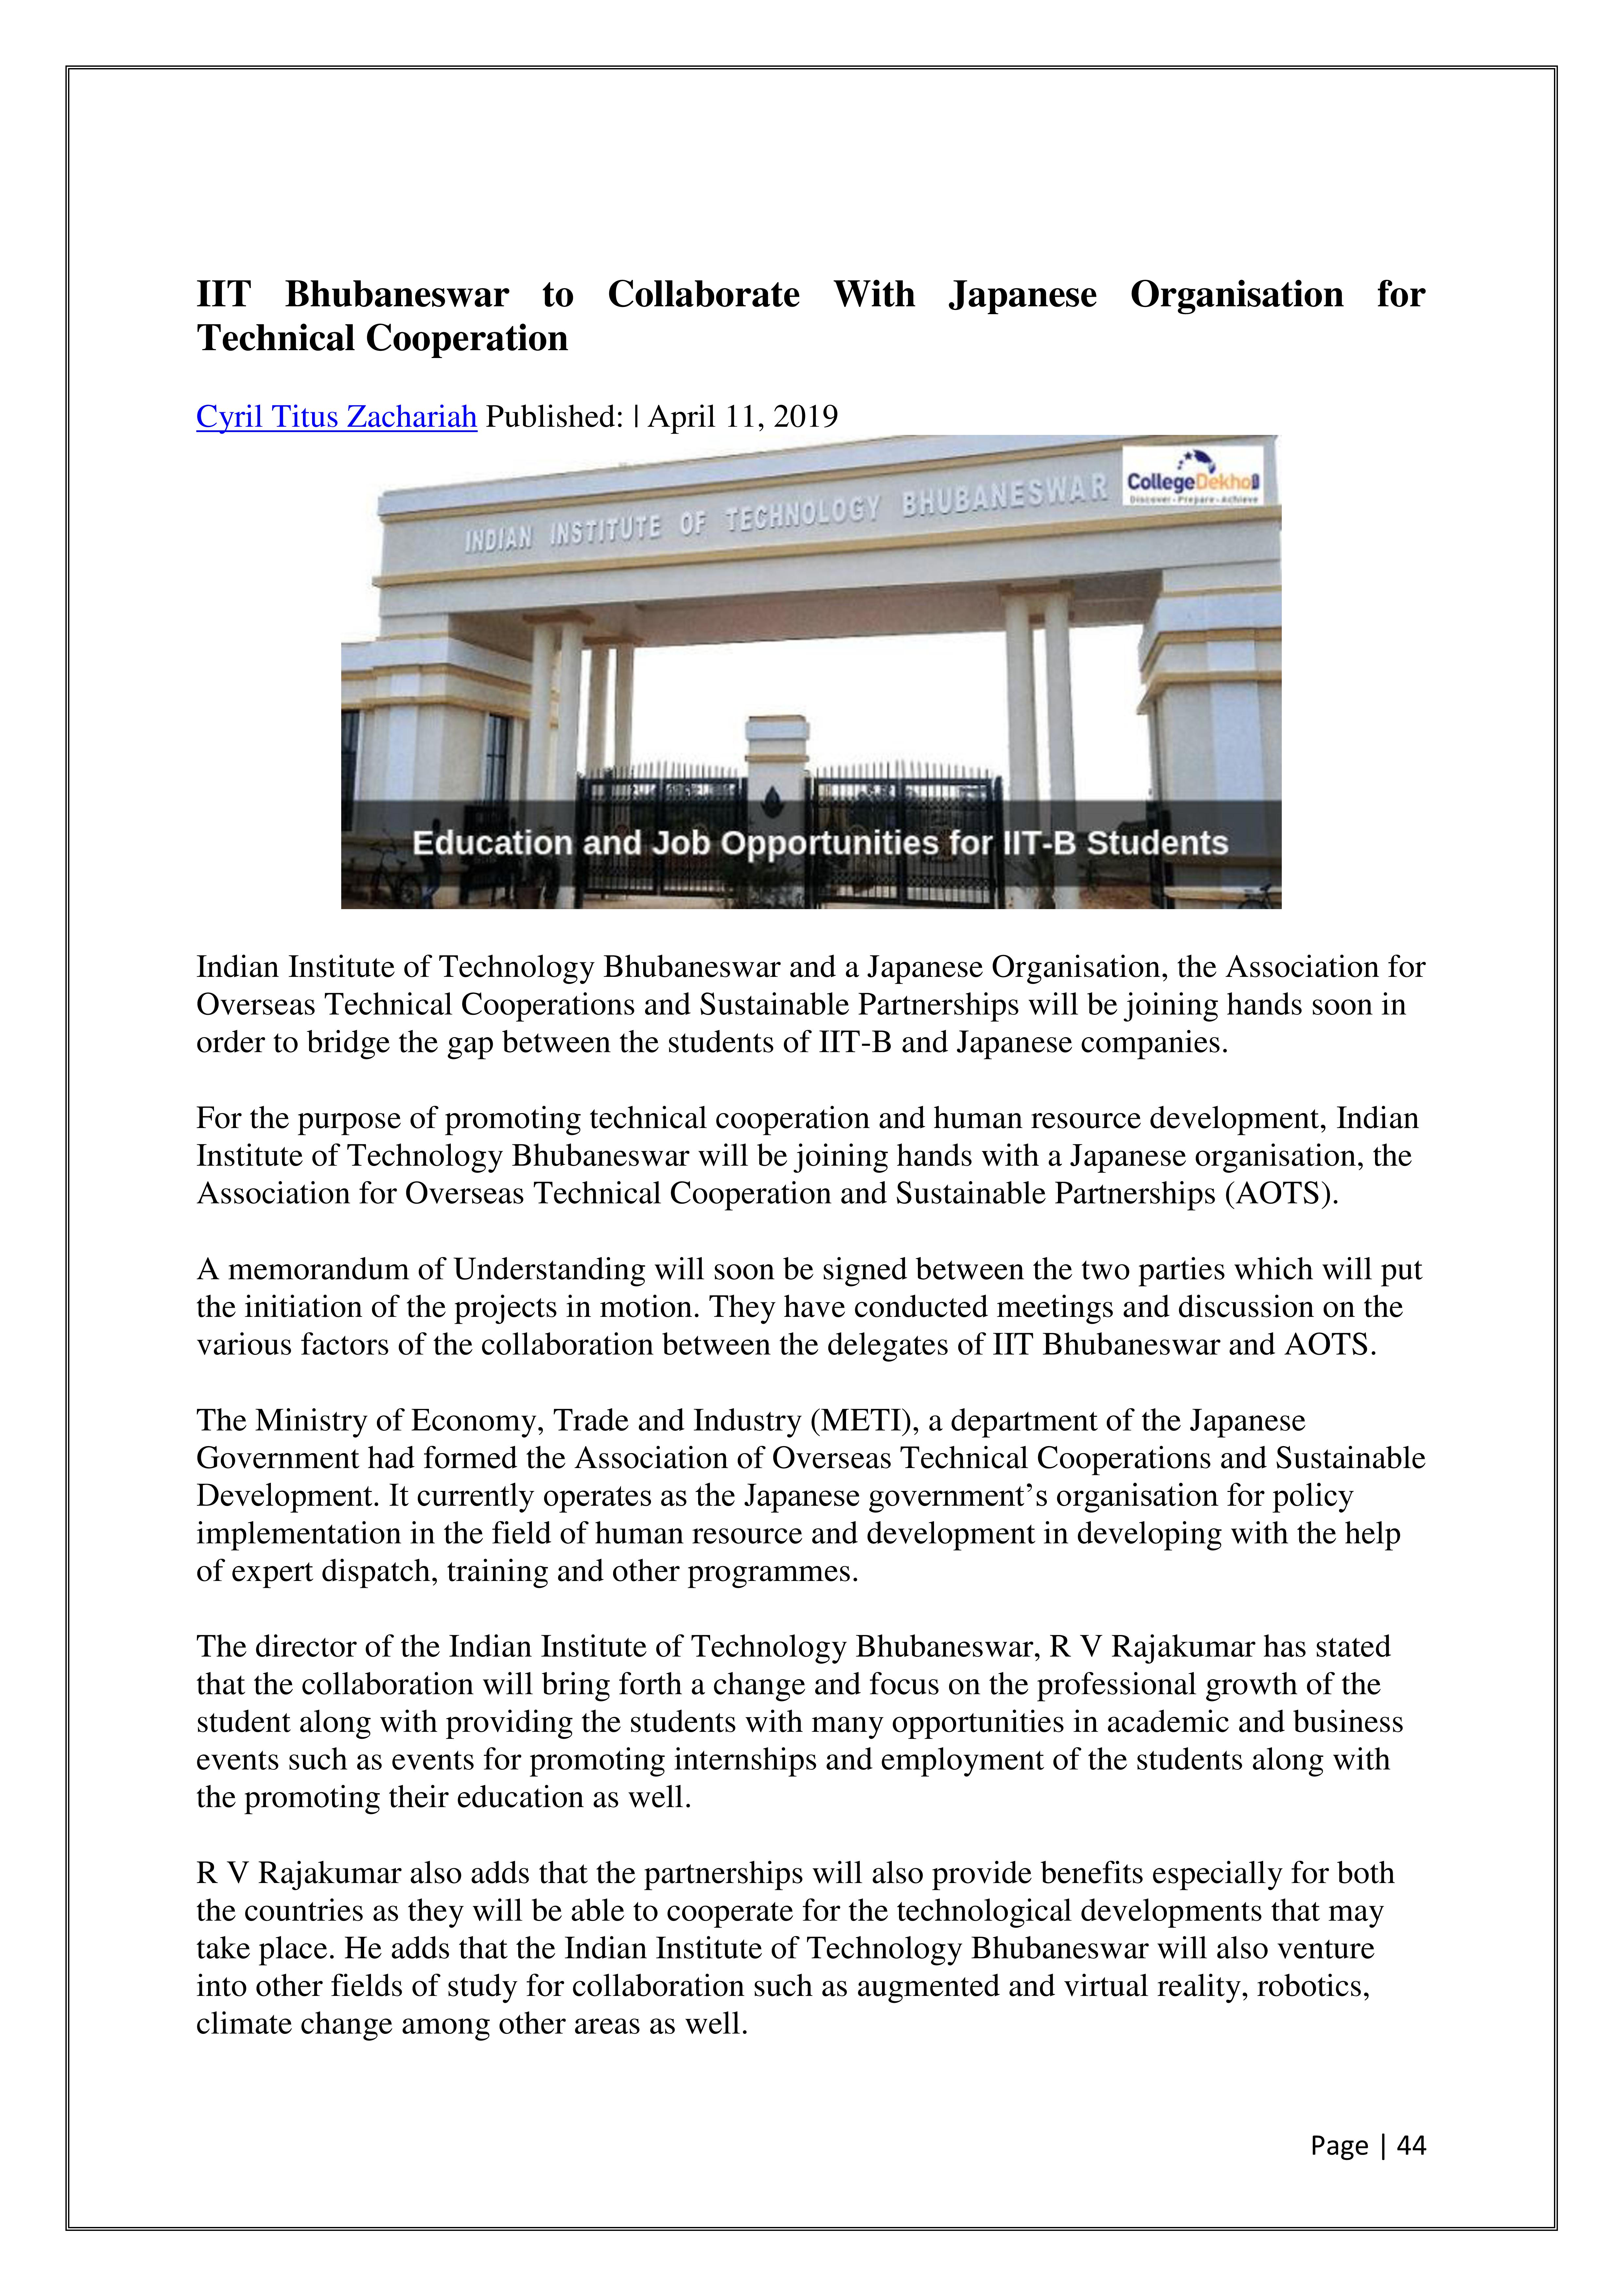 In Press & Media | Press Releases :: Indian Institute of Technology